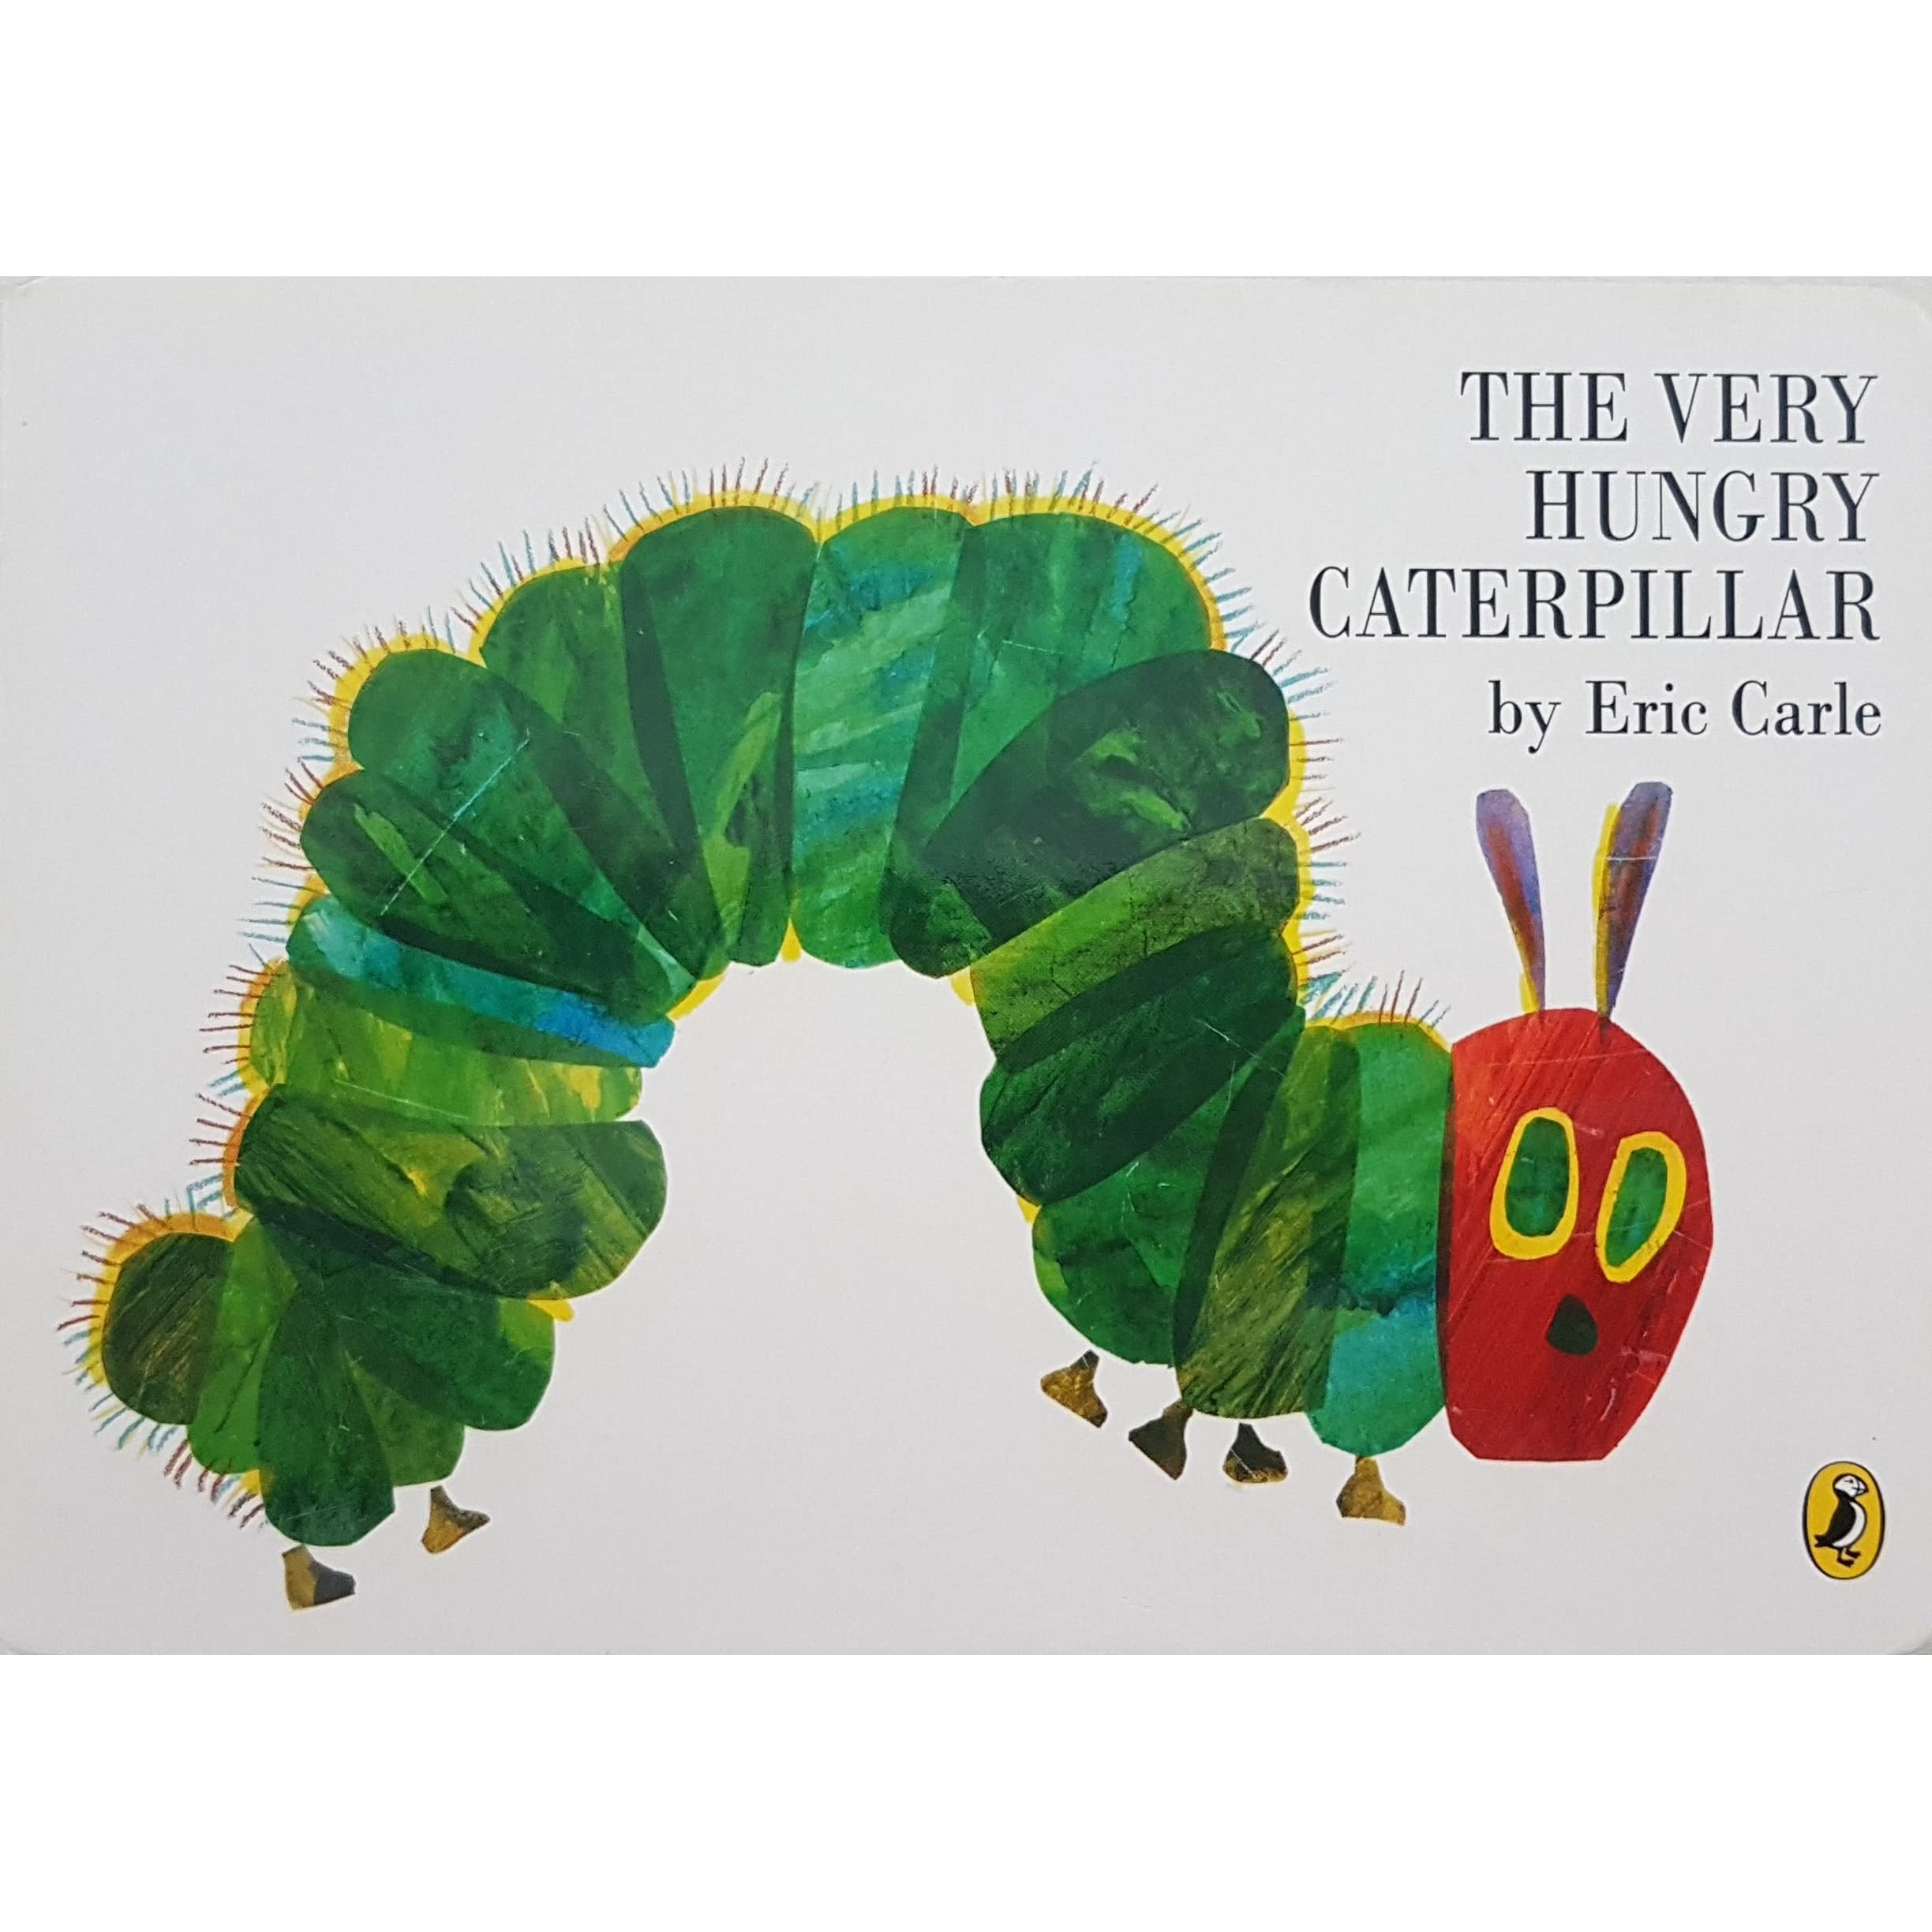 Image result for the very hungry caterpillar book cover